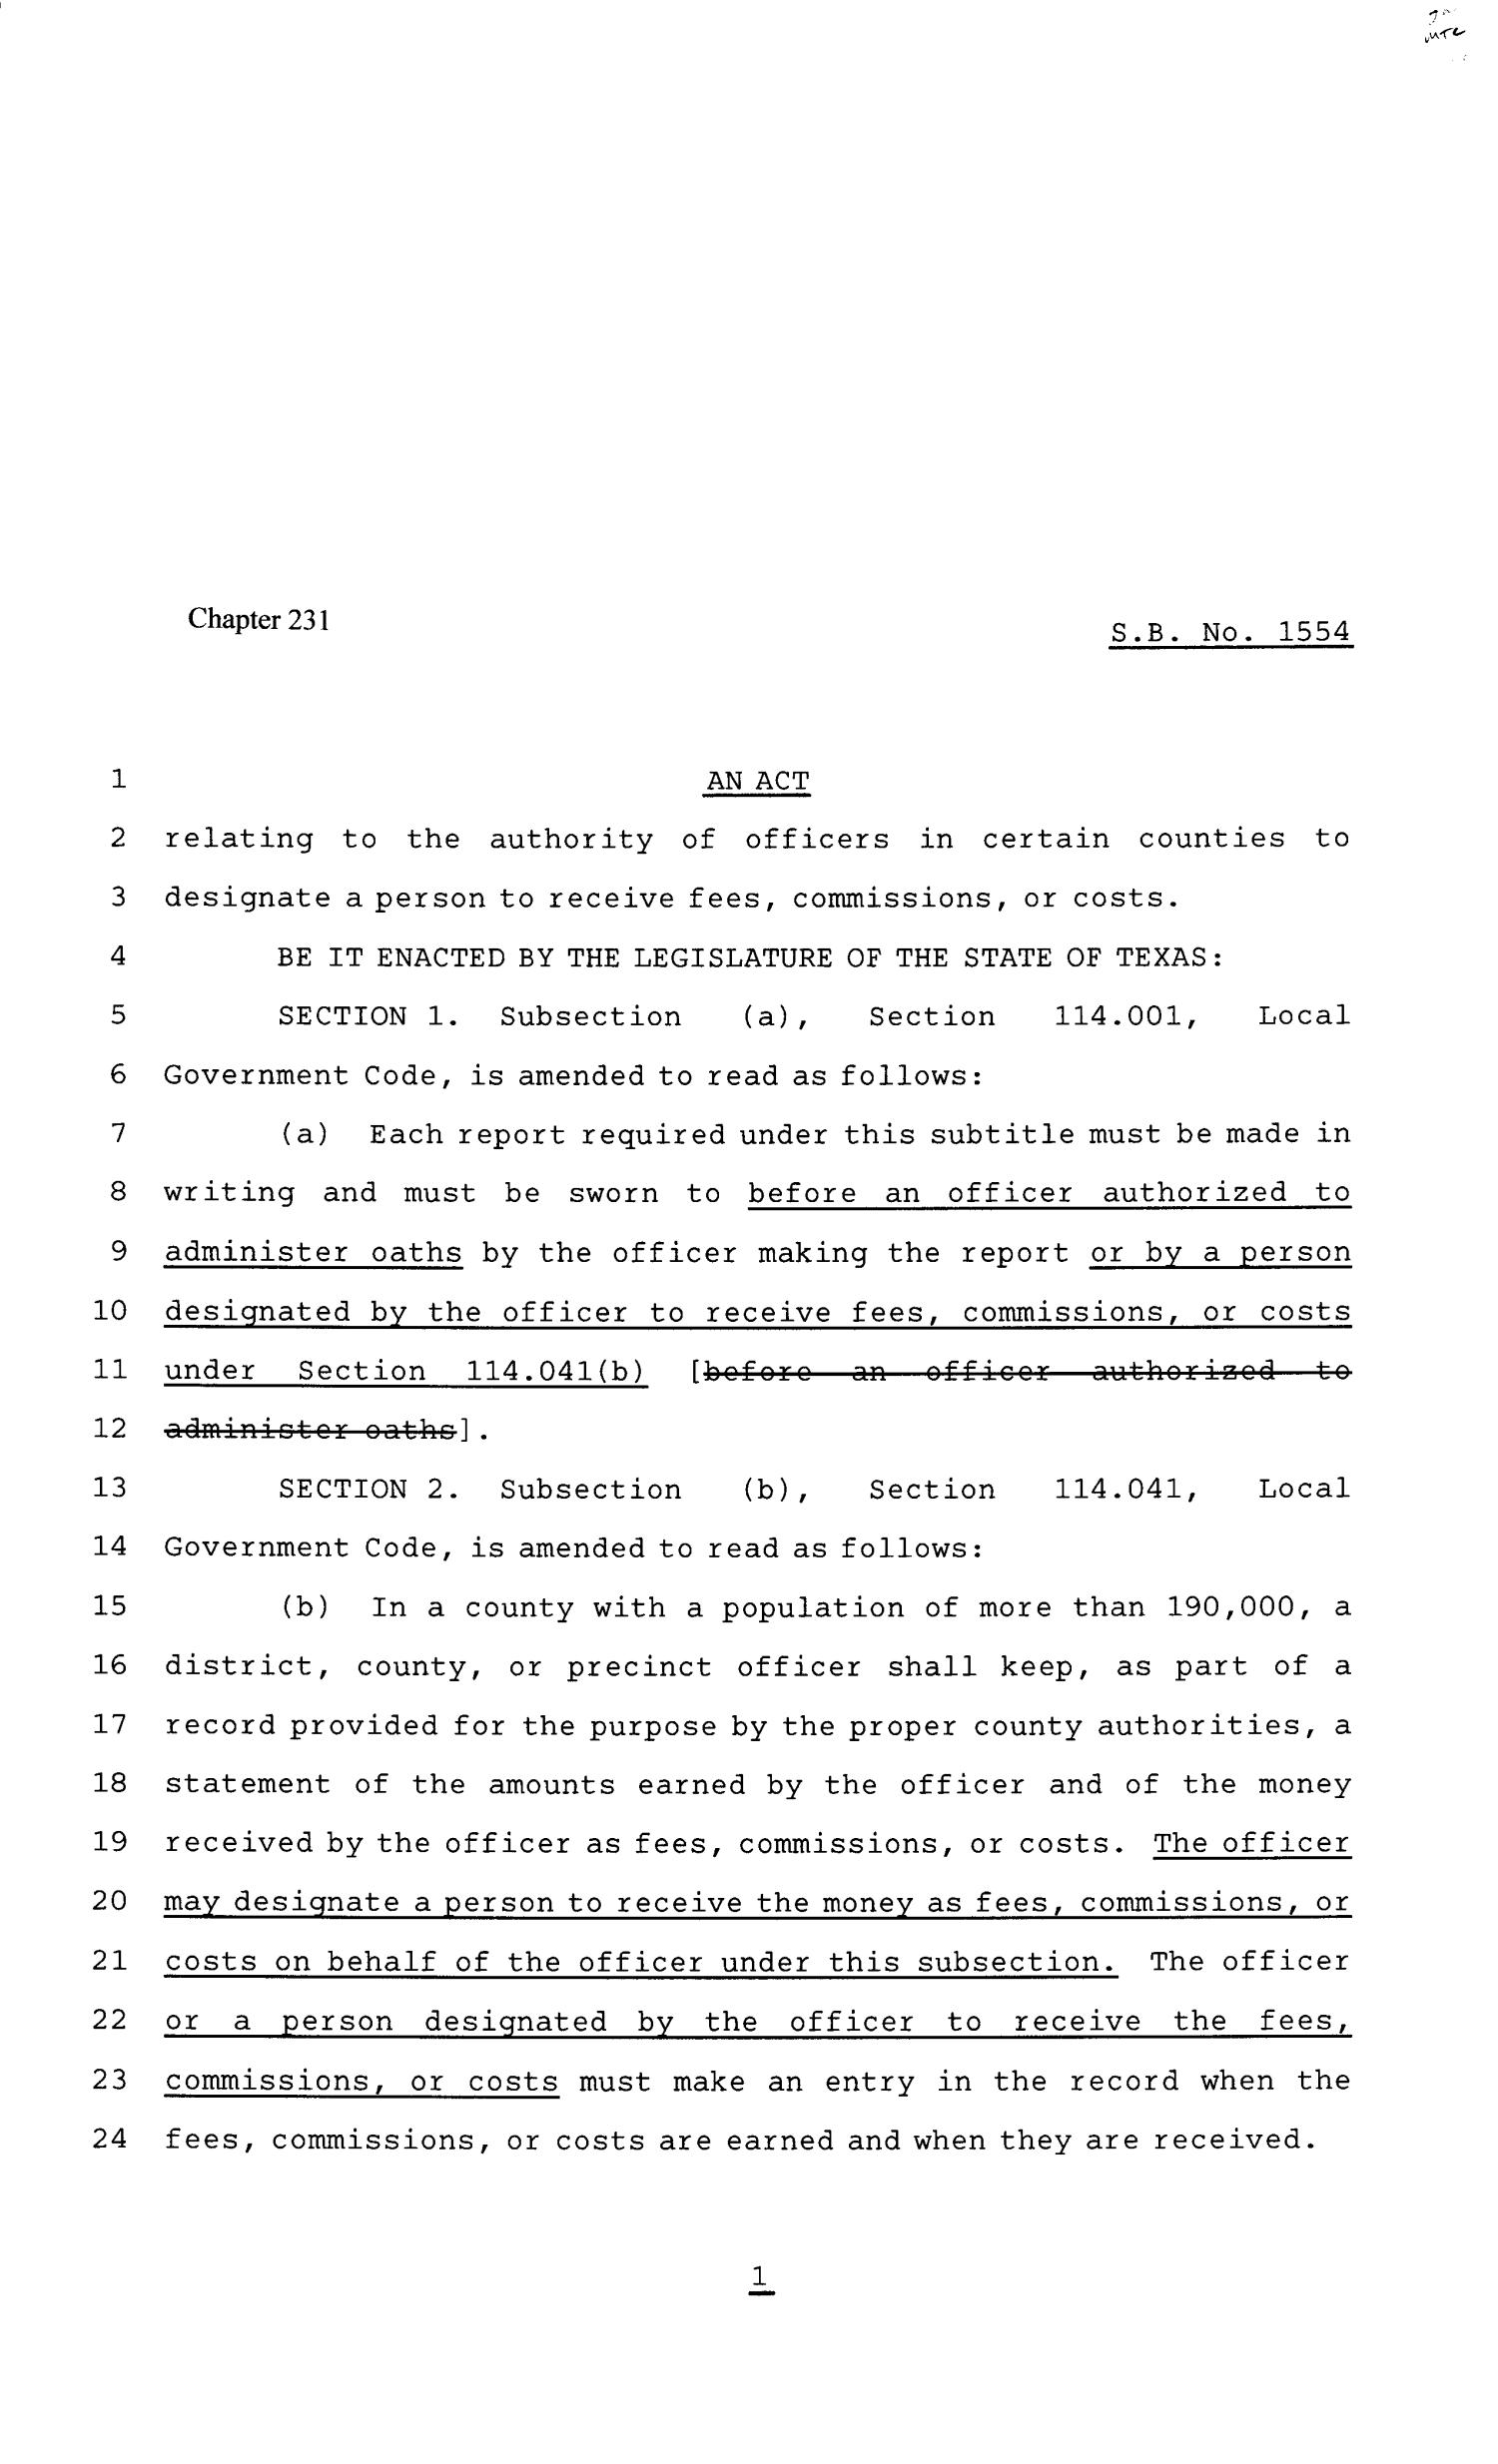 81st Texas Legislature, Senate Bill 1554, Chapter 231                                                                                                      [Sequence #]: 1 of 2